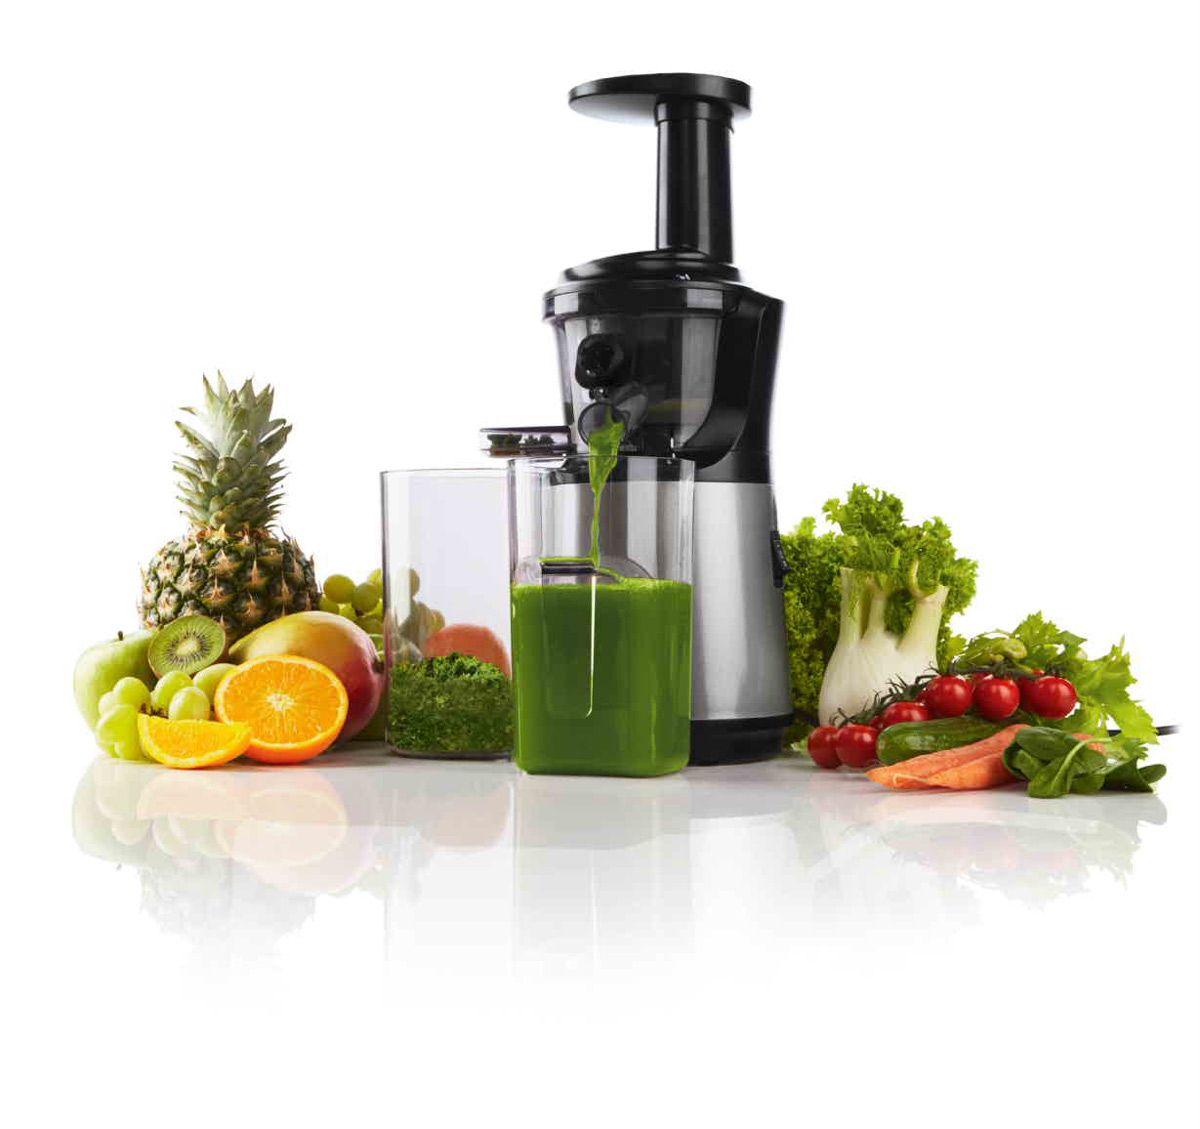 Lidl to sell a £59.99 Slow Juicer